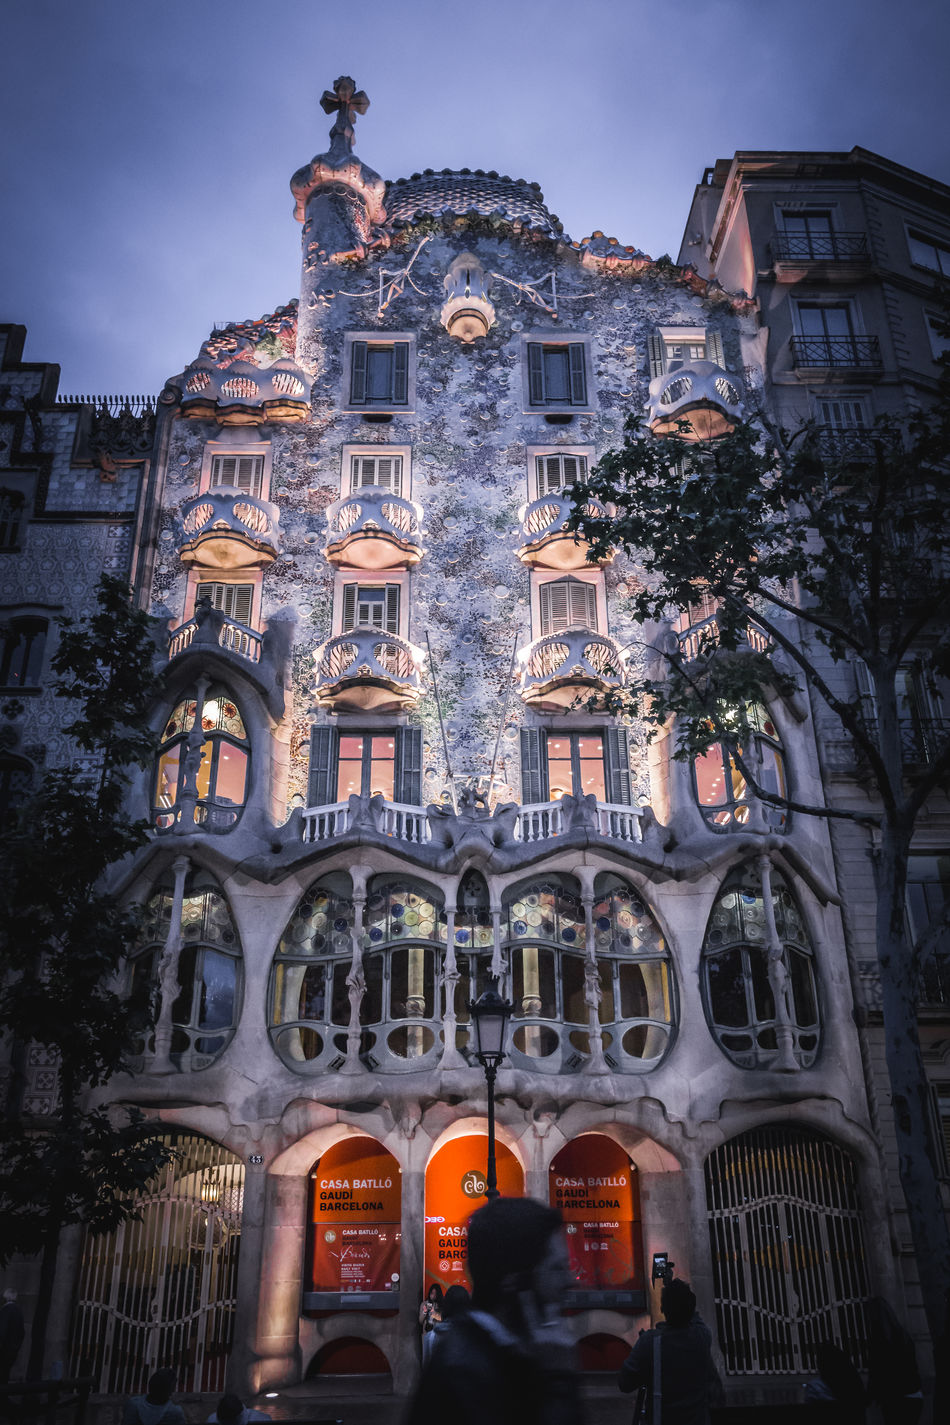 Architectural Feature Architecture Architecture Architecture_collection Barcelona Barcelona, Spain Building Building Exterior Built Structure City City Day Gaudi Low Angle View Outdoors Real People Sky SPAIN Spirituality Travel Travel Destinations Travel Photography Tree Urban Wanderlust